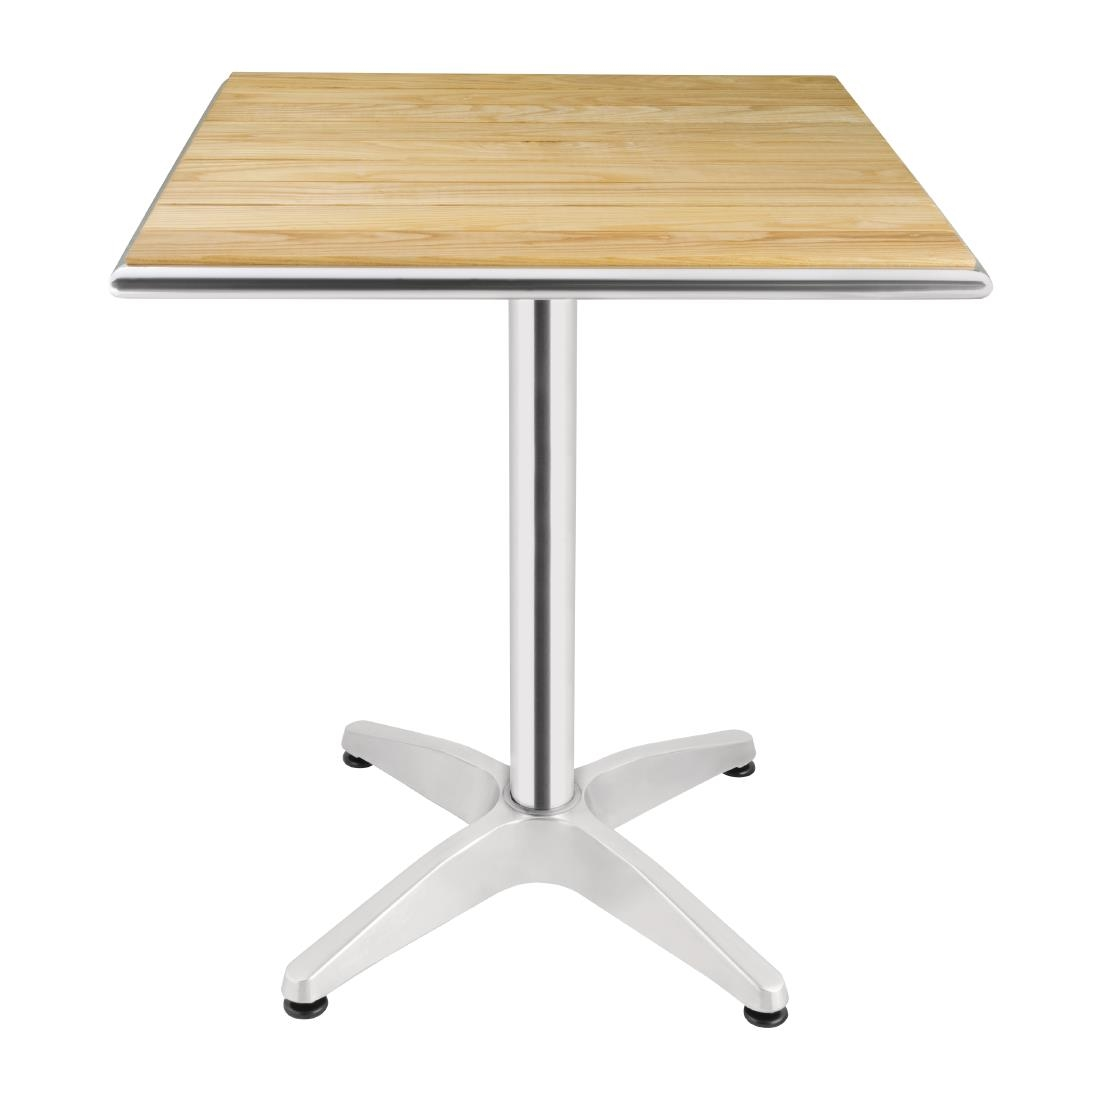 Ash Top Bistro Table U43 - Square